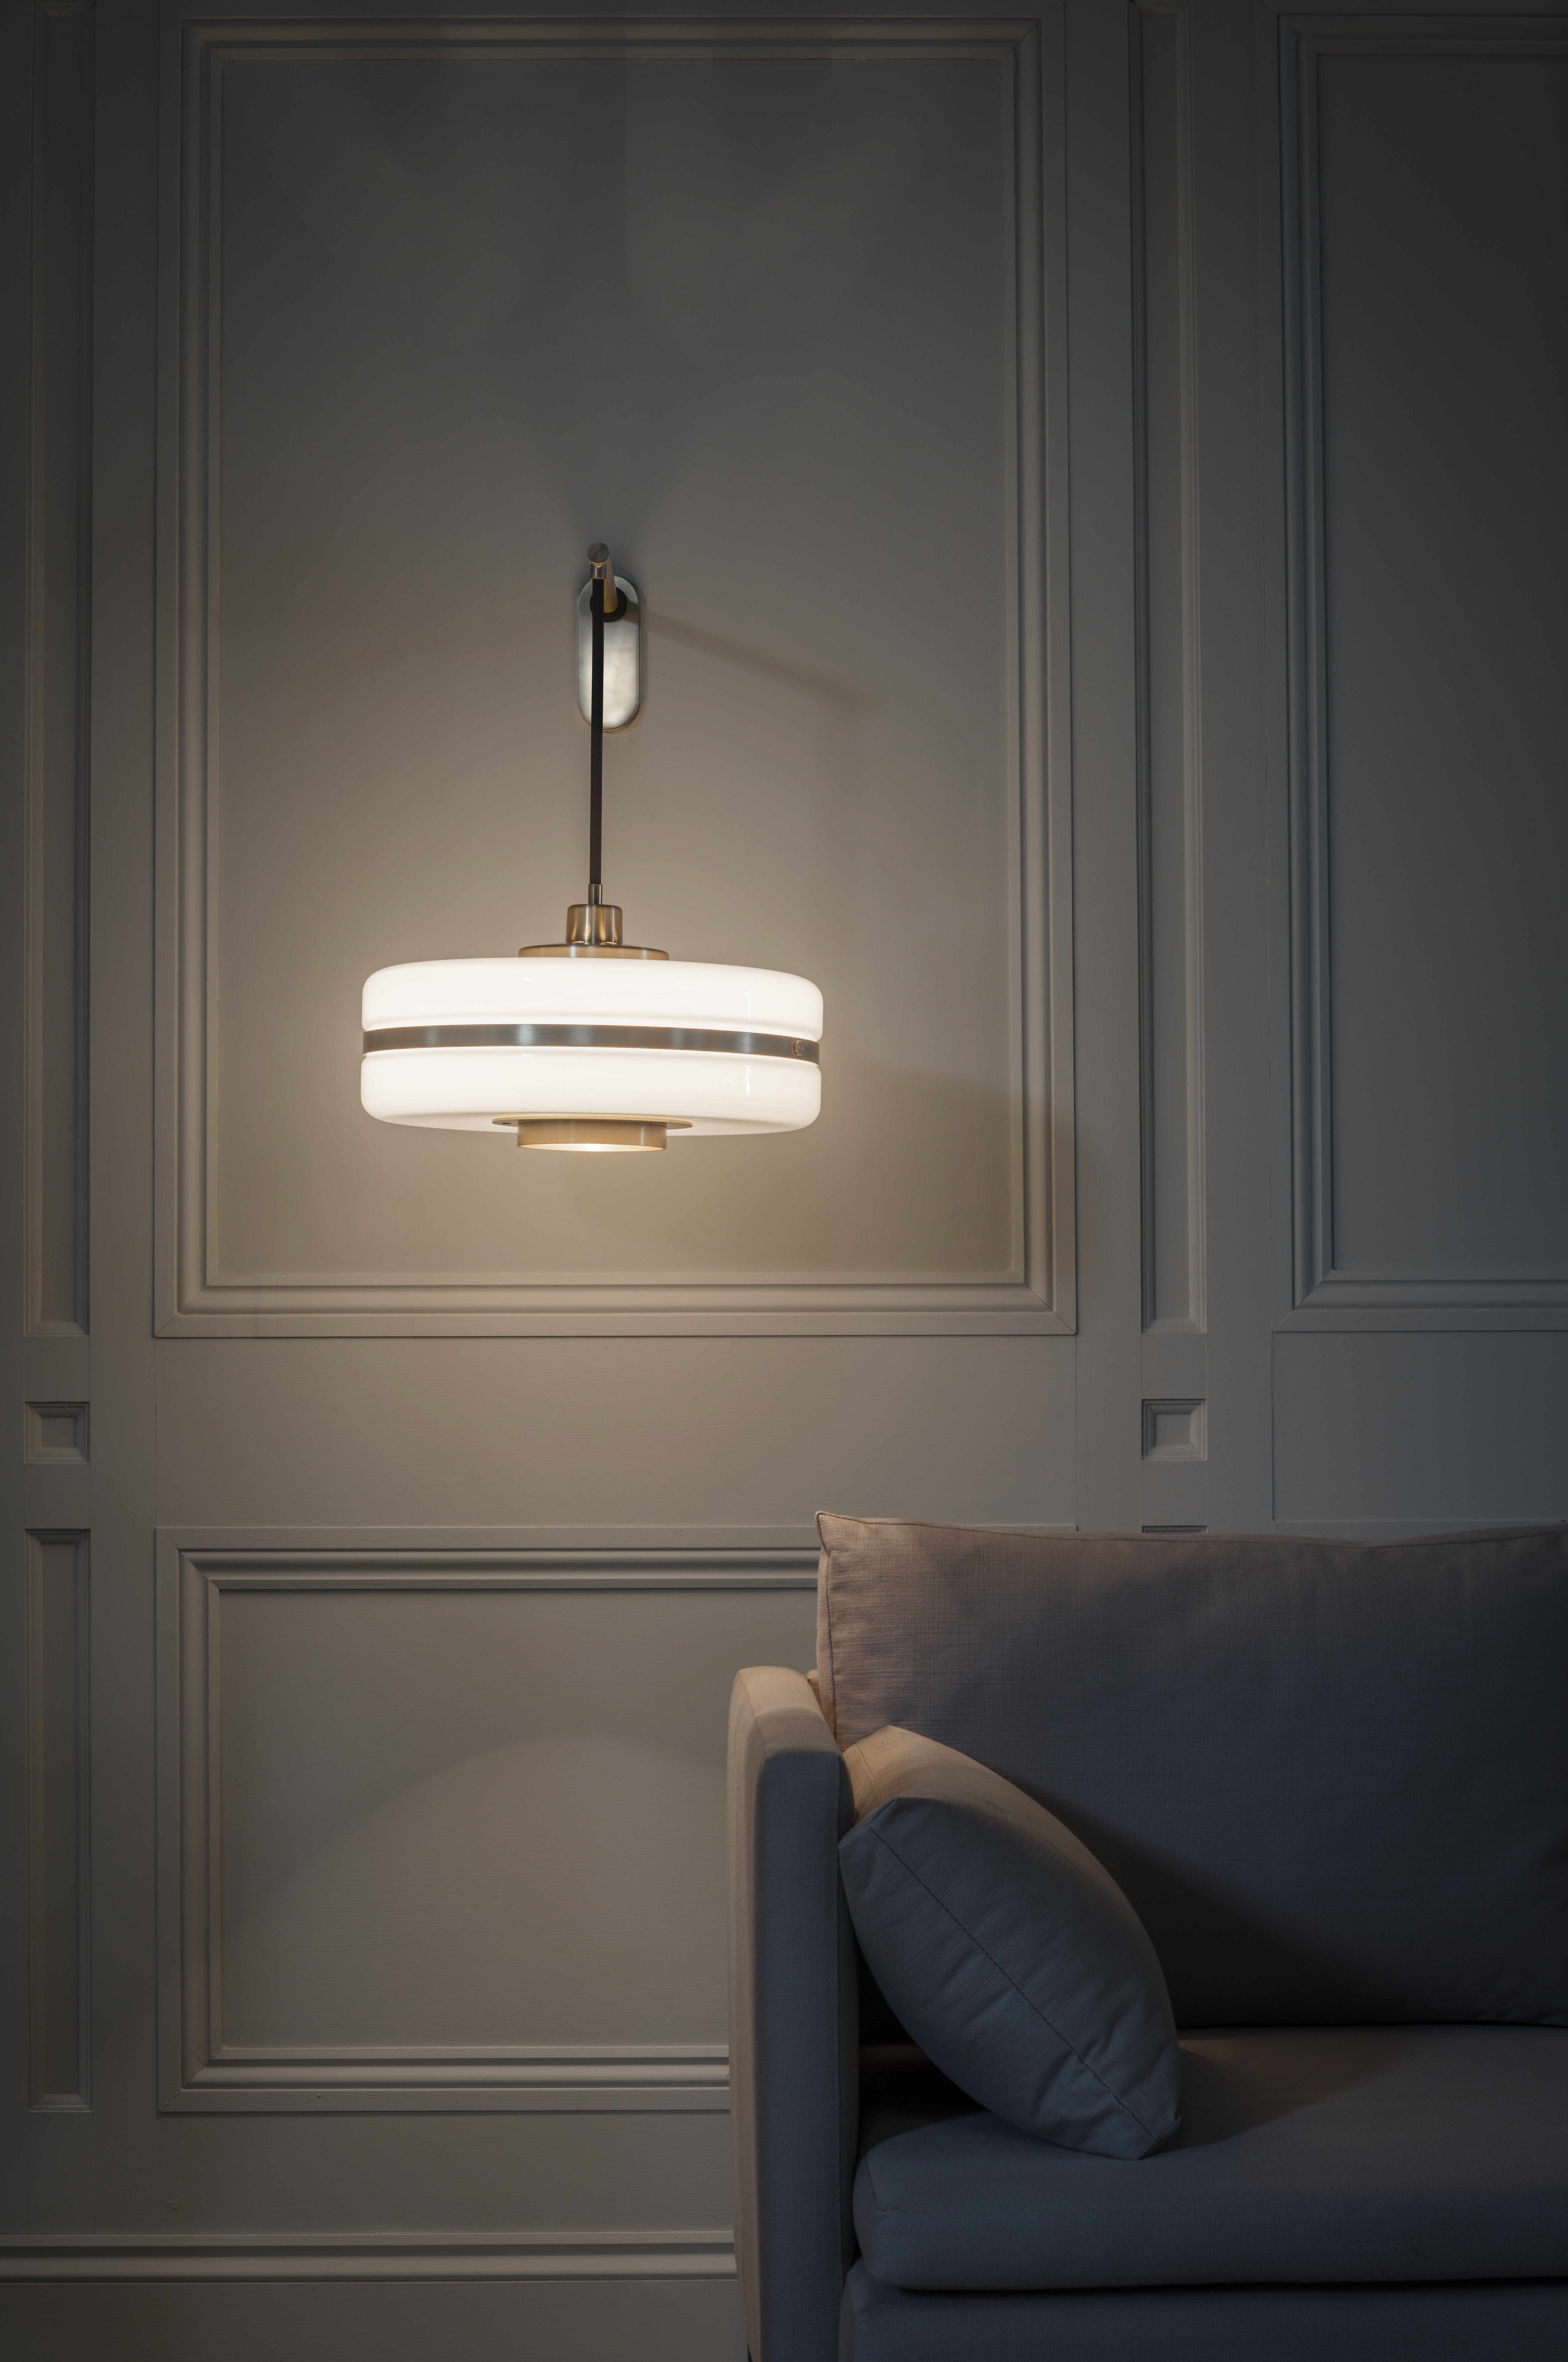 New For 2016 The Masina Wall Light With Opal Glass Shade And Brass Trim Www Bertfrank Co Uk Wall Lights Wall Lighting Design Lighting Design